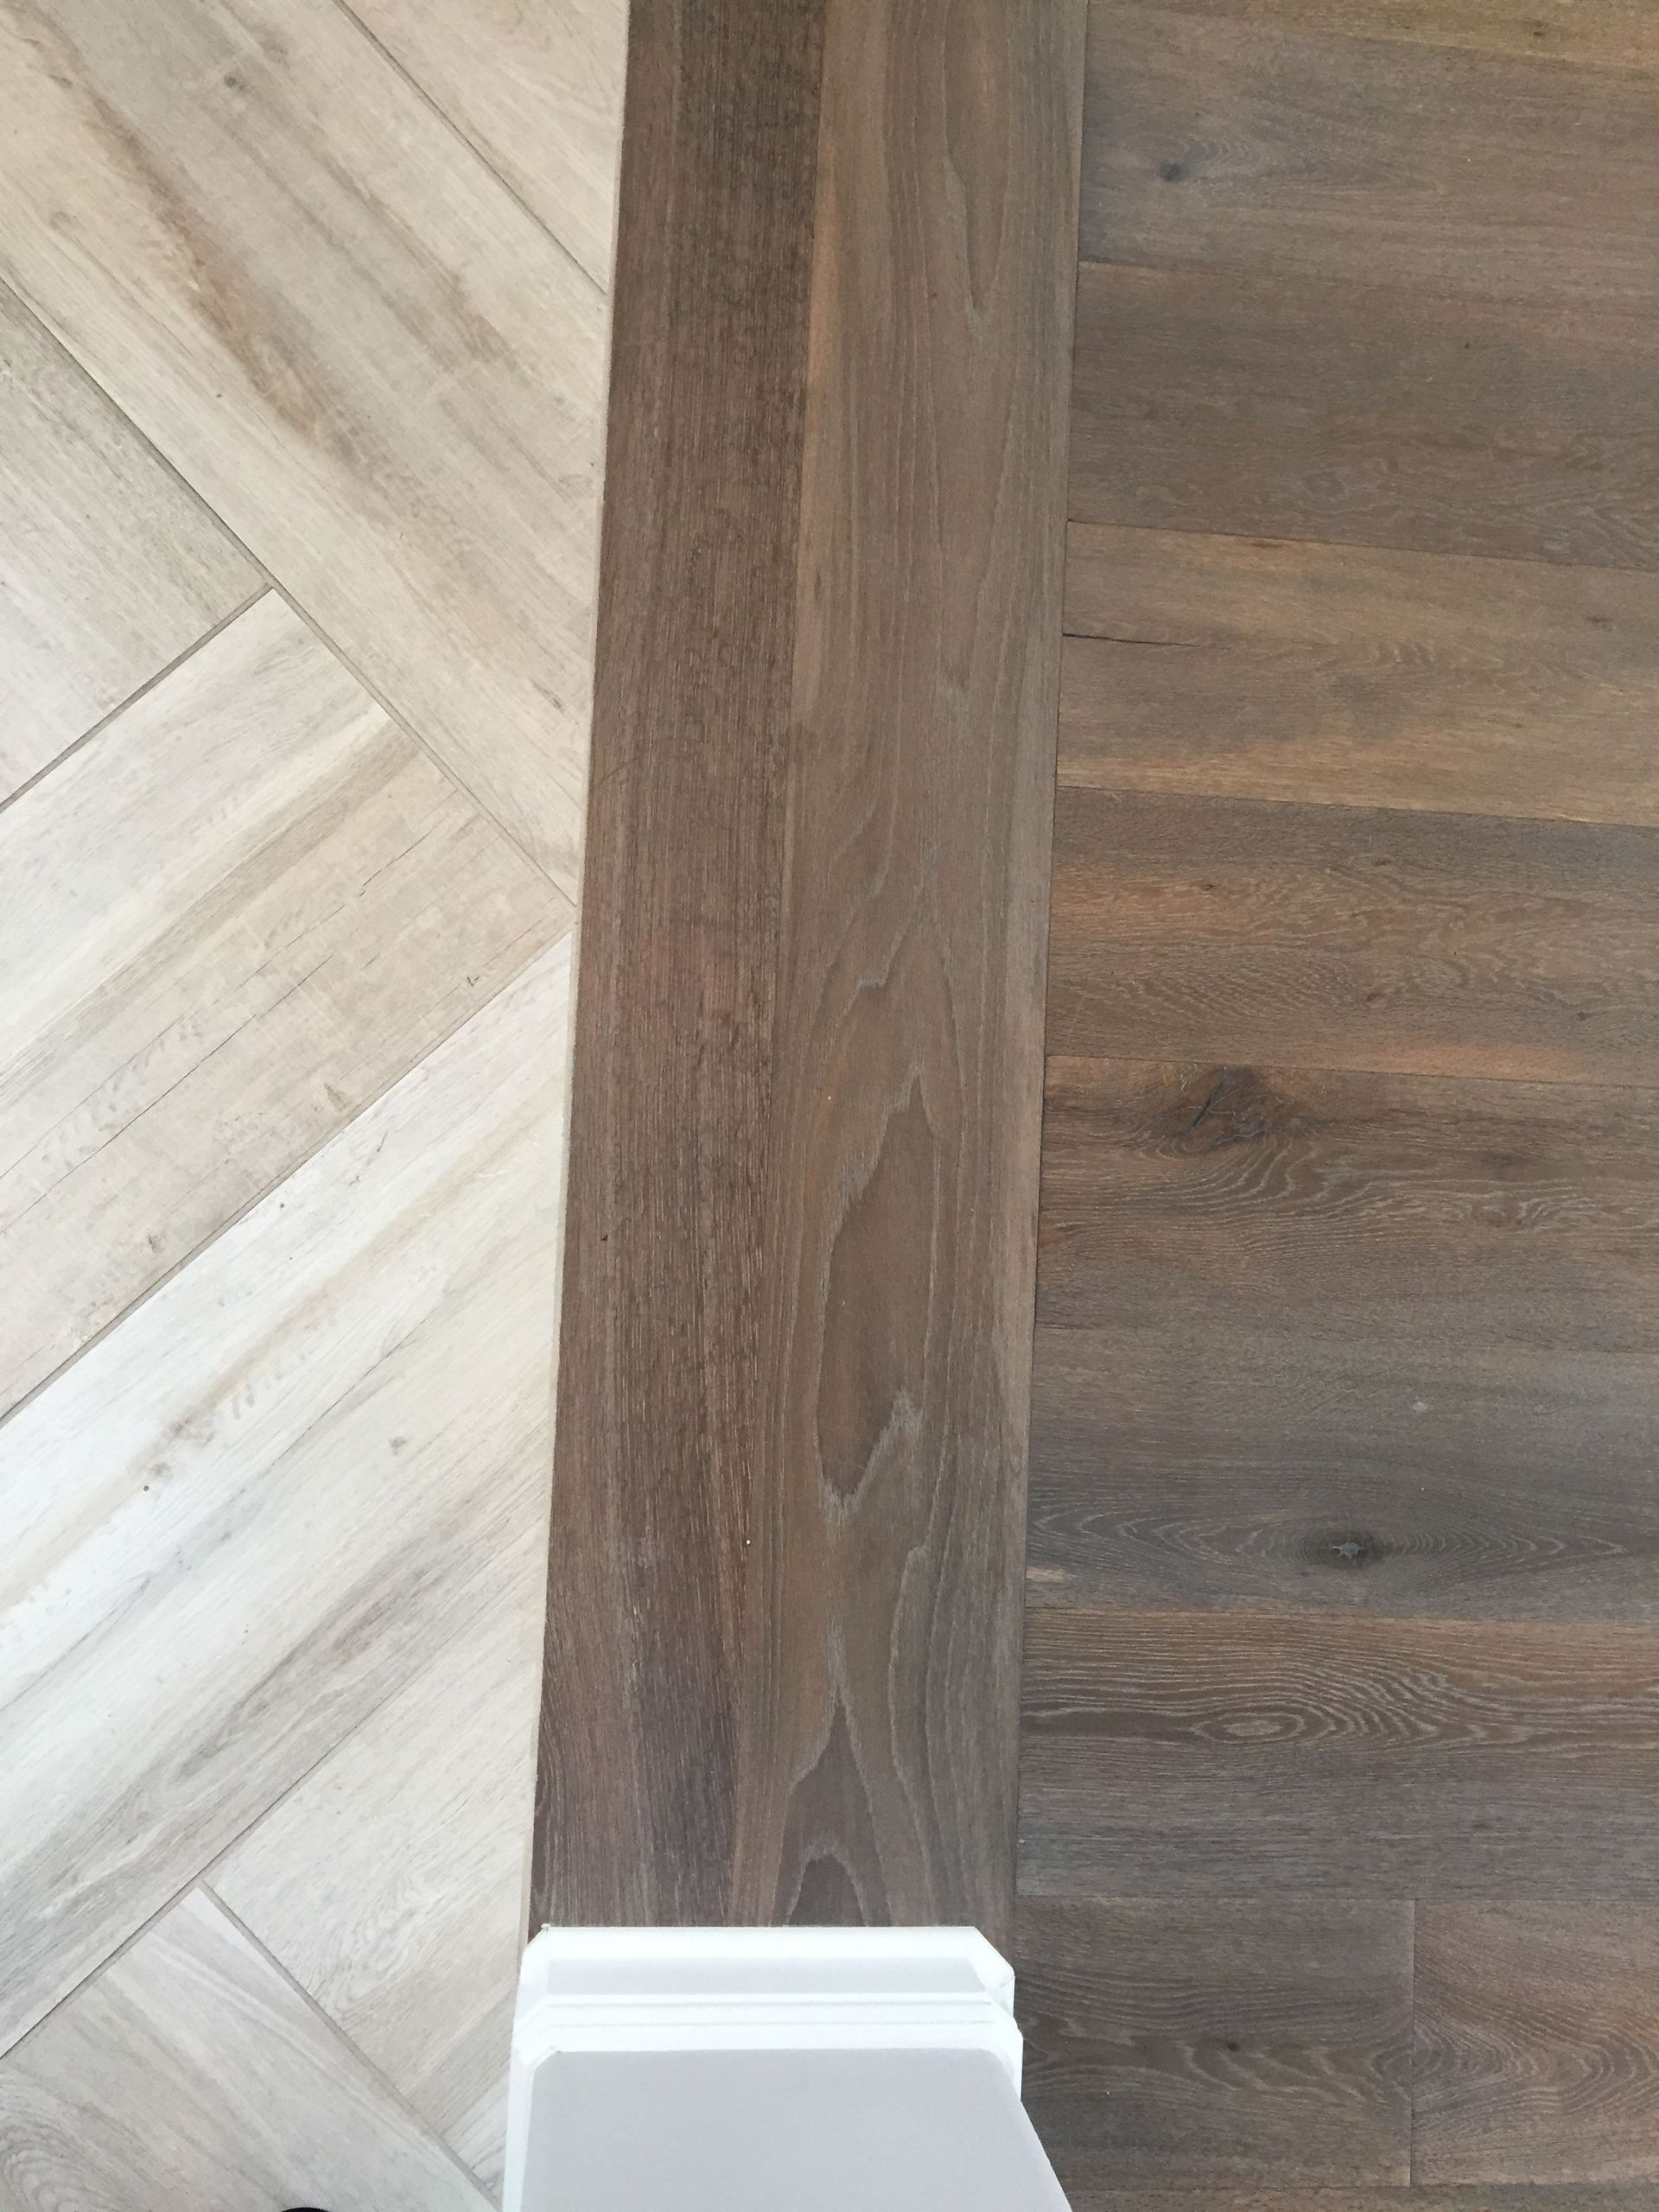 hardwood floor fireplace transition of floor transition laminate to herringbone tile pattern model intended for floor transition laminate to herringbone tile pattern herringbone tile pattern